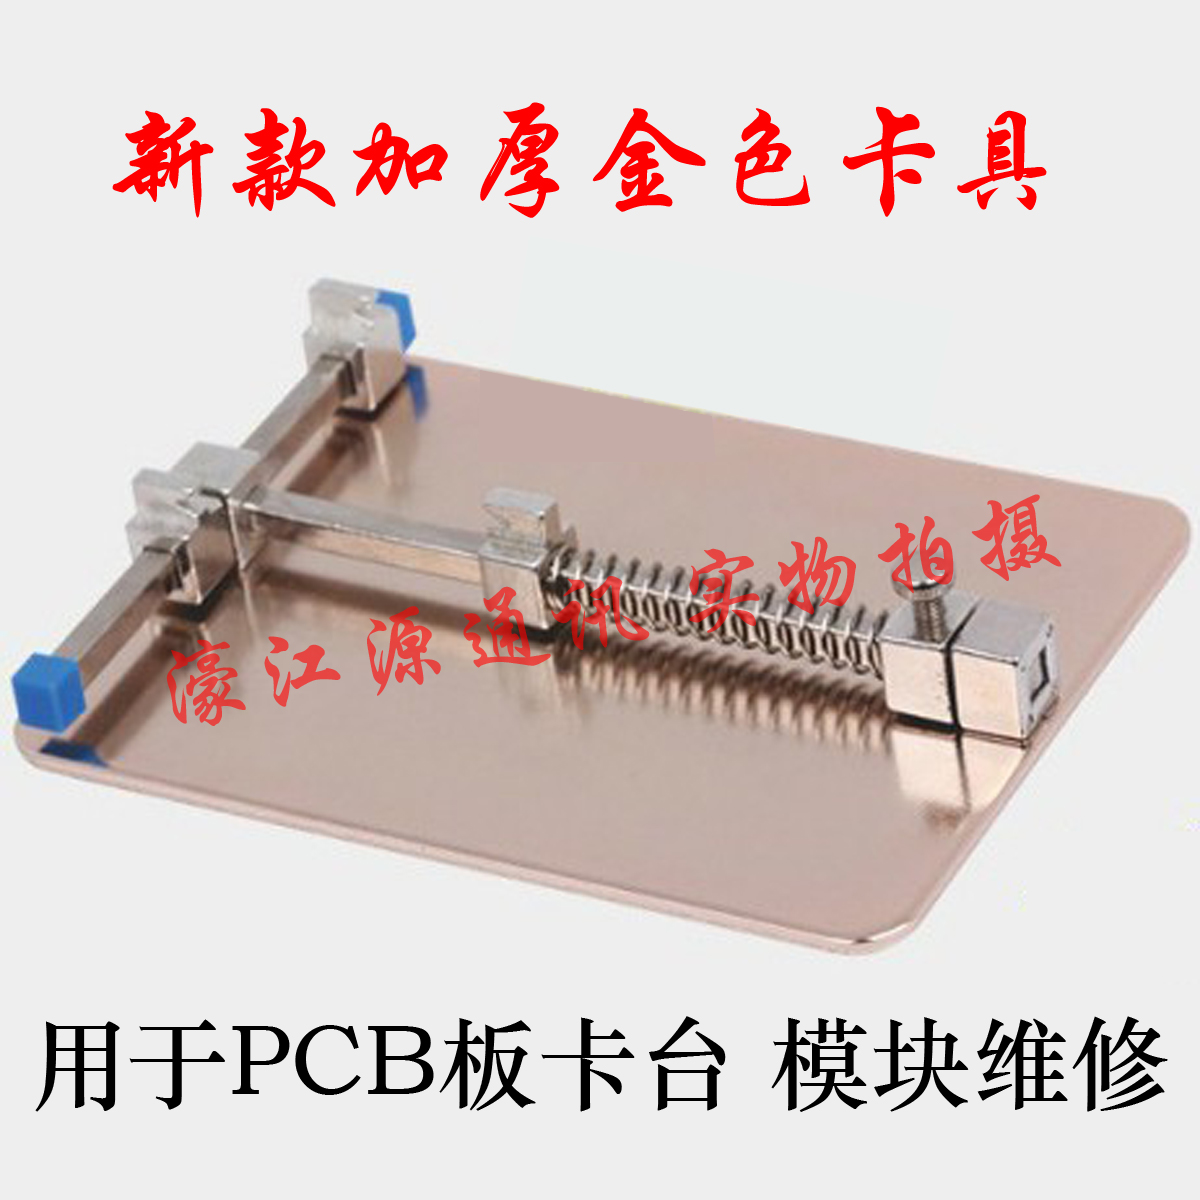 Usd 652 Mobile Phone Repair Fixture Stainless Steel Circuit Board Tools Zoom Lightbox Moreview